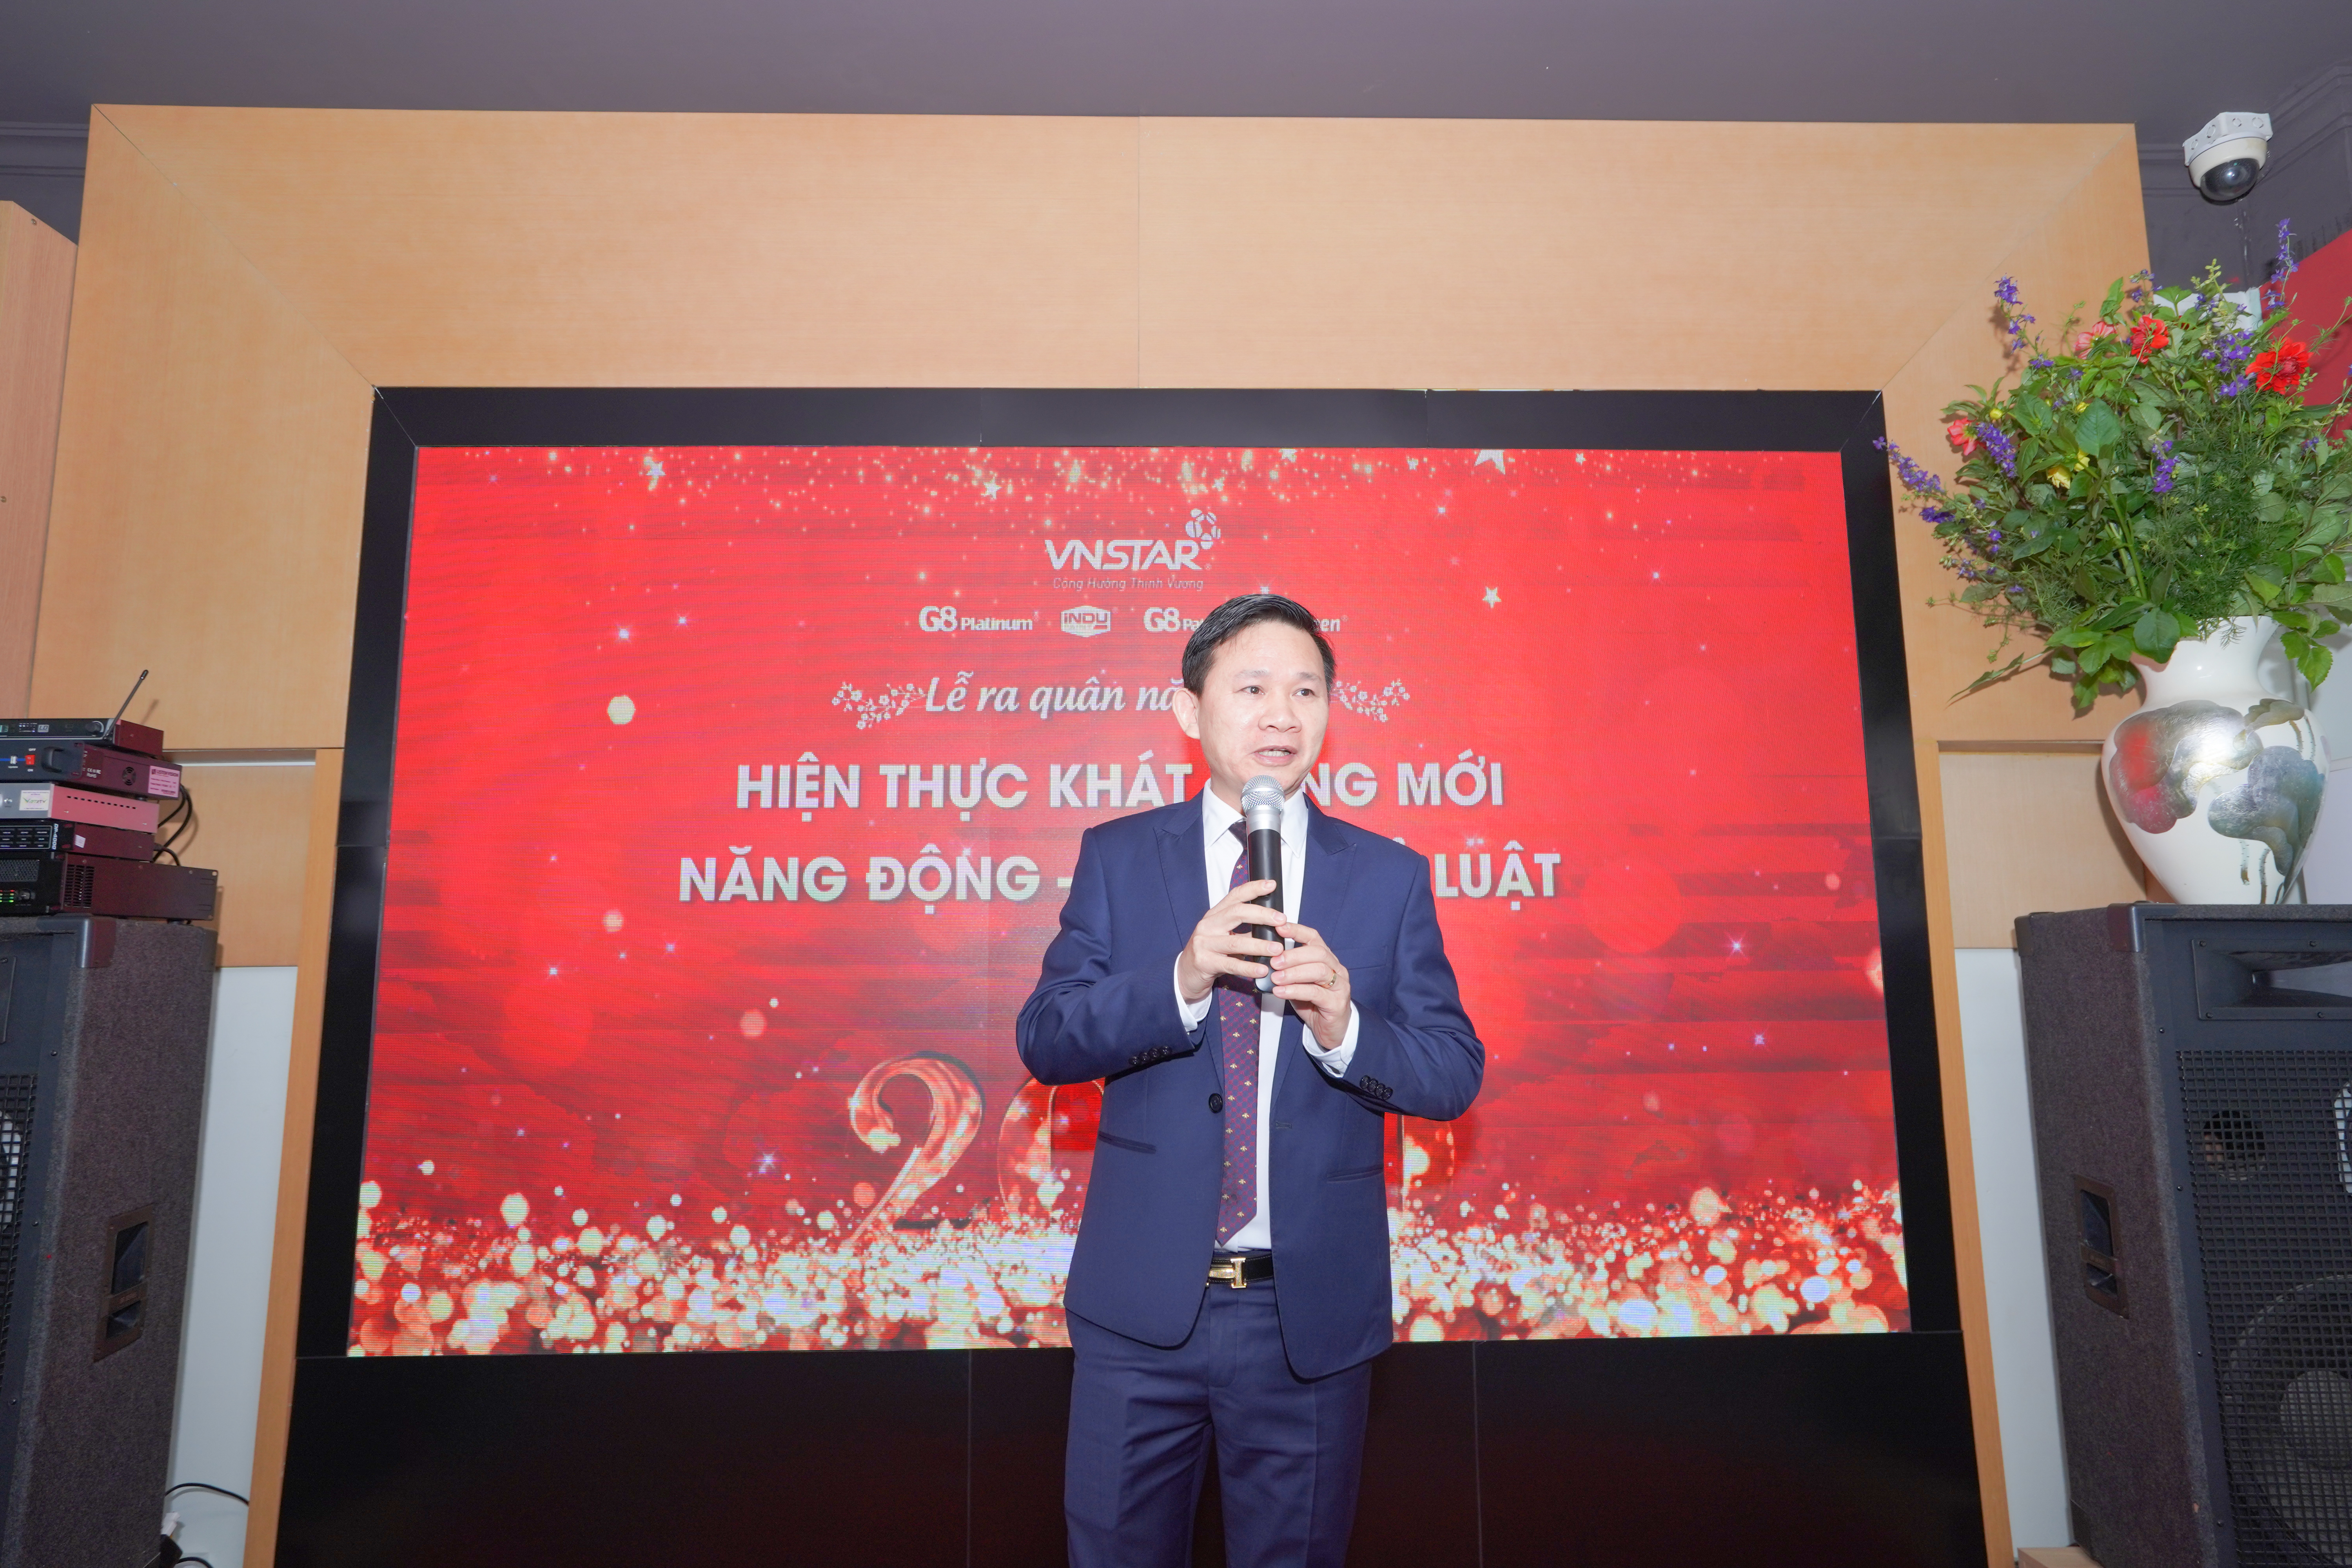 OPENING CEREMONY 2020: VIETNAM STAR IMPLEMENTS NEW ASPIRATIONS